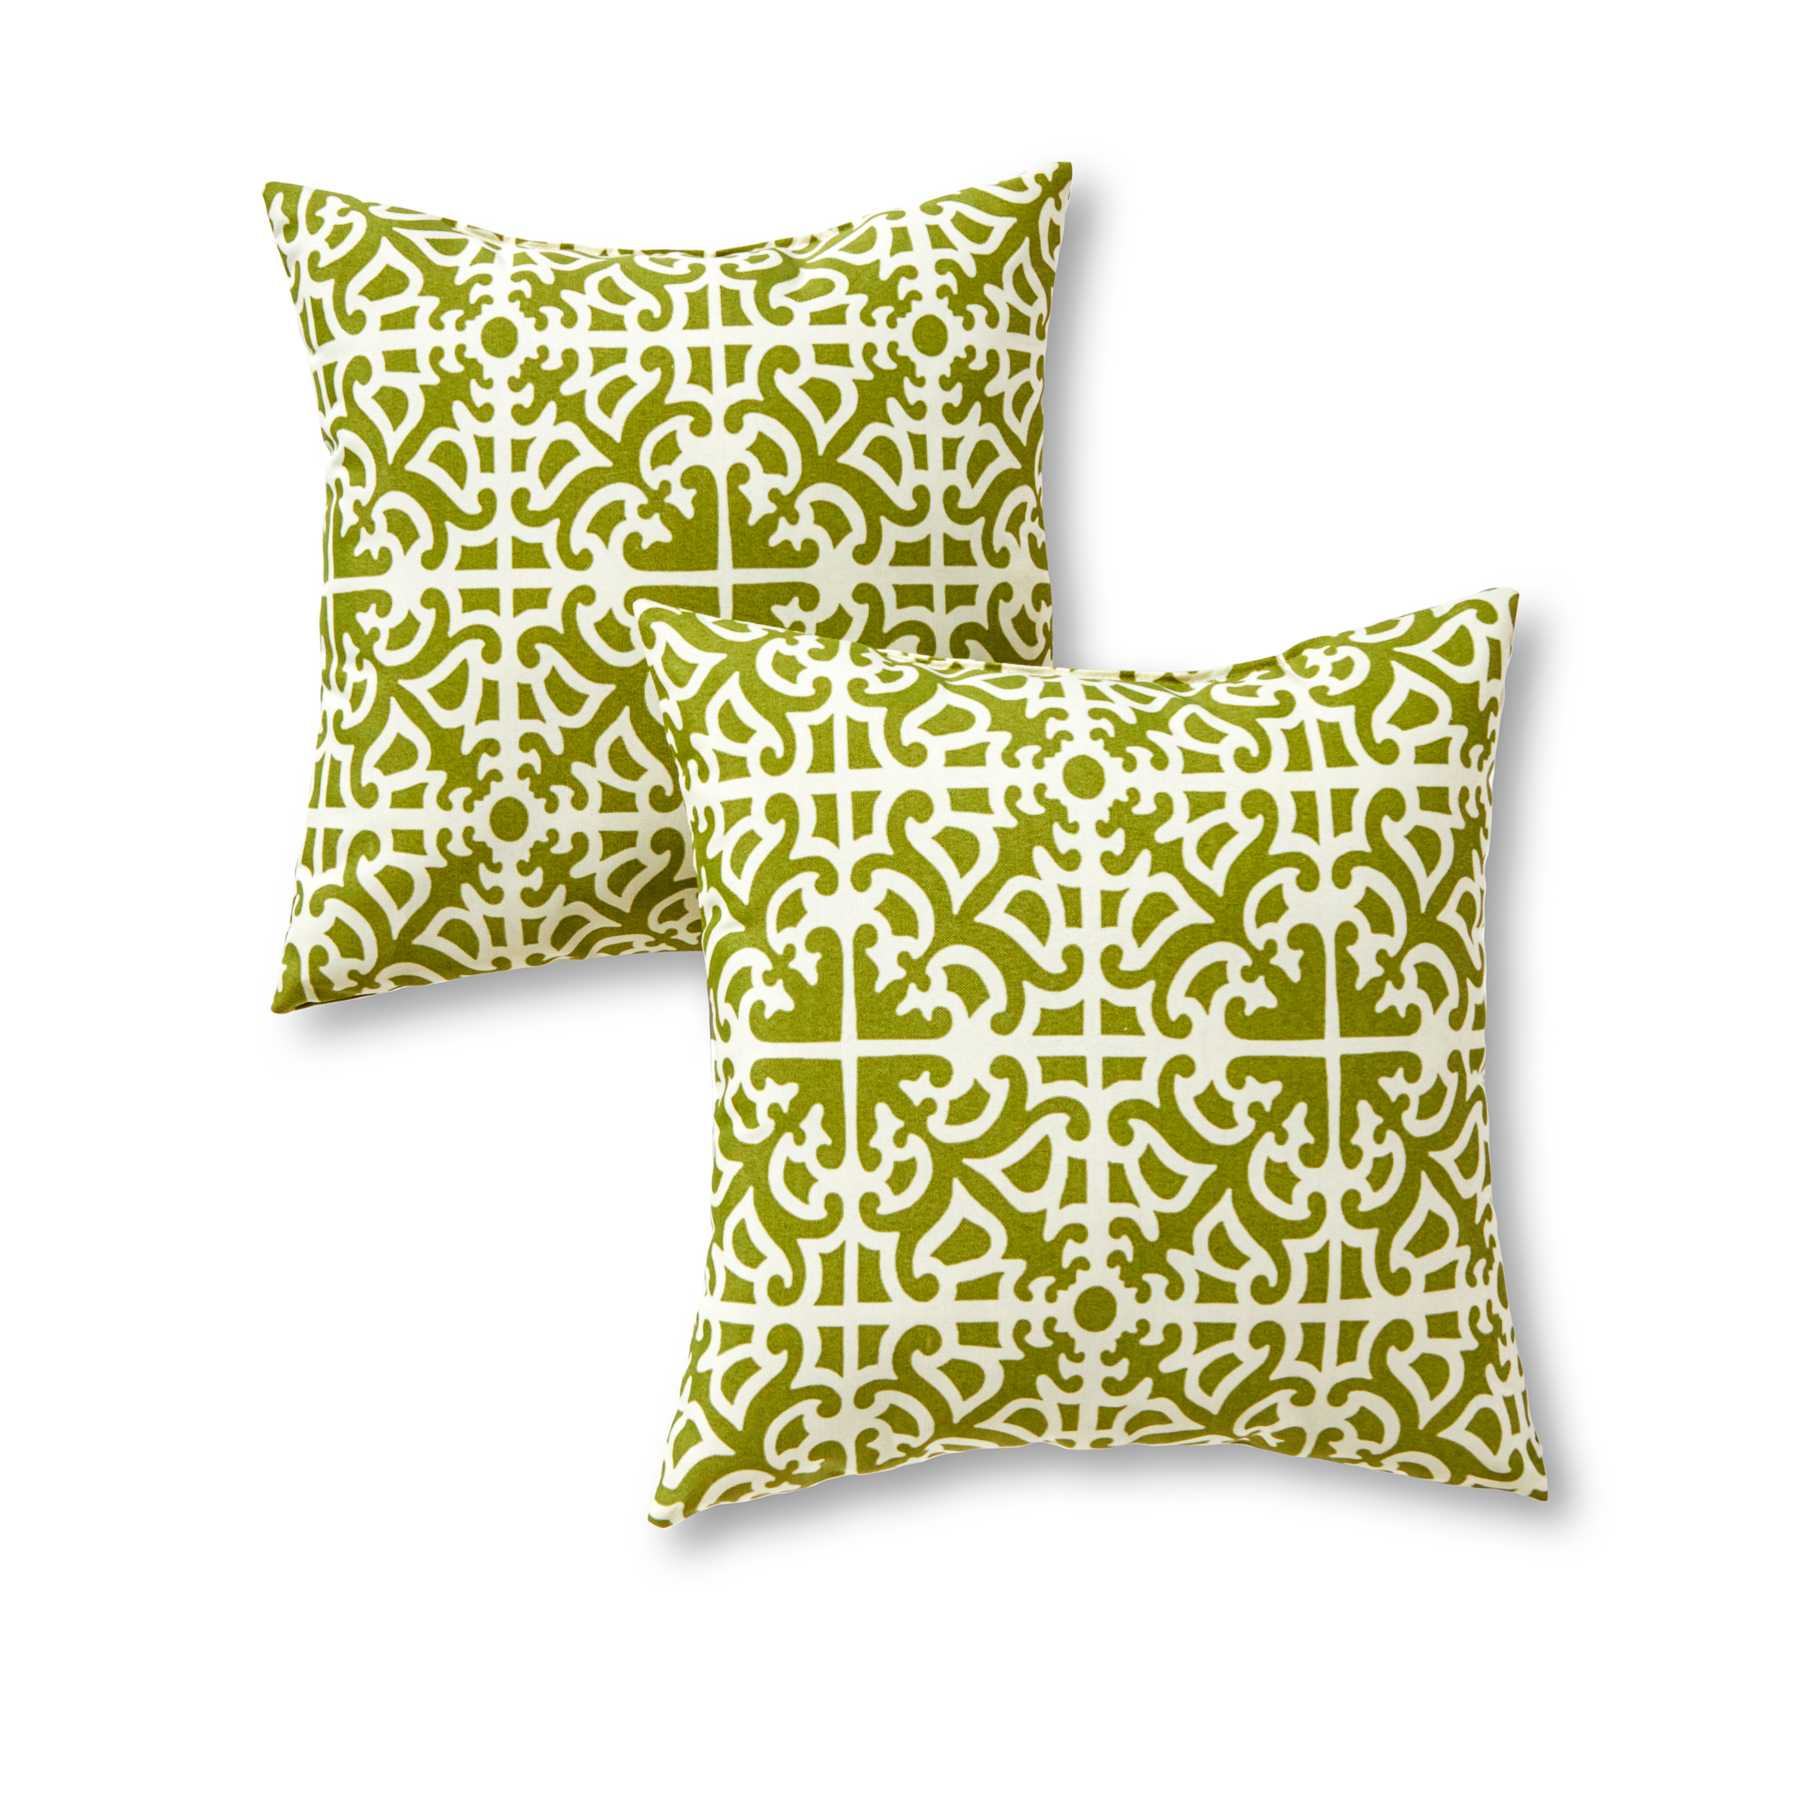 Greendale Home Fashions Lattice Outdoor Accent Pillow, Set of 2